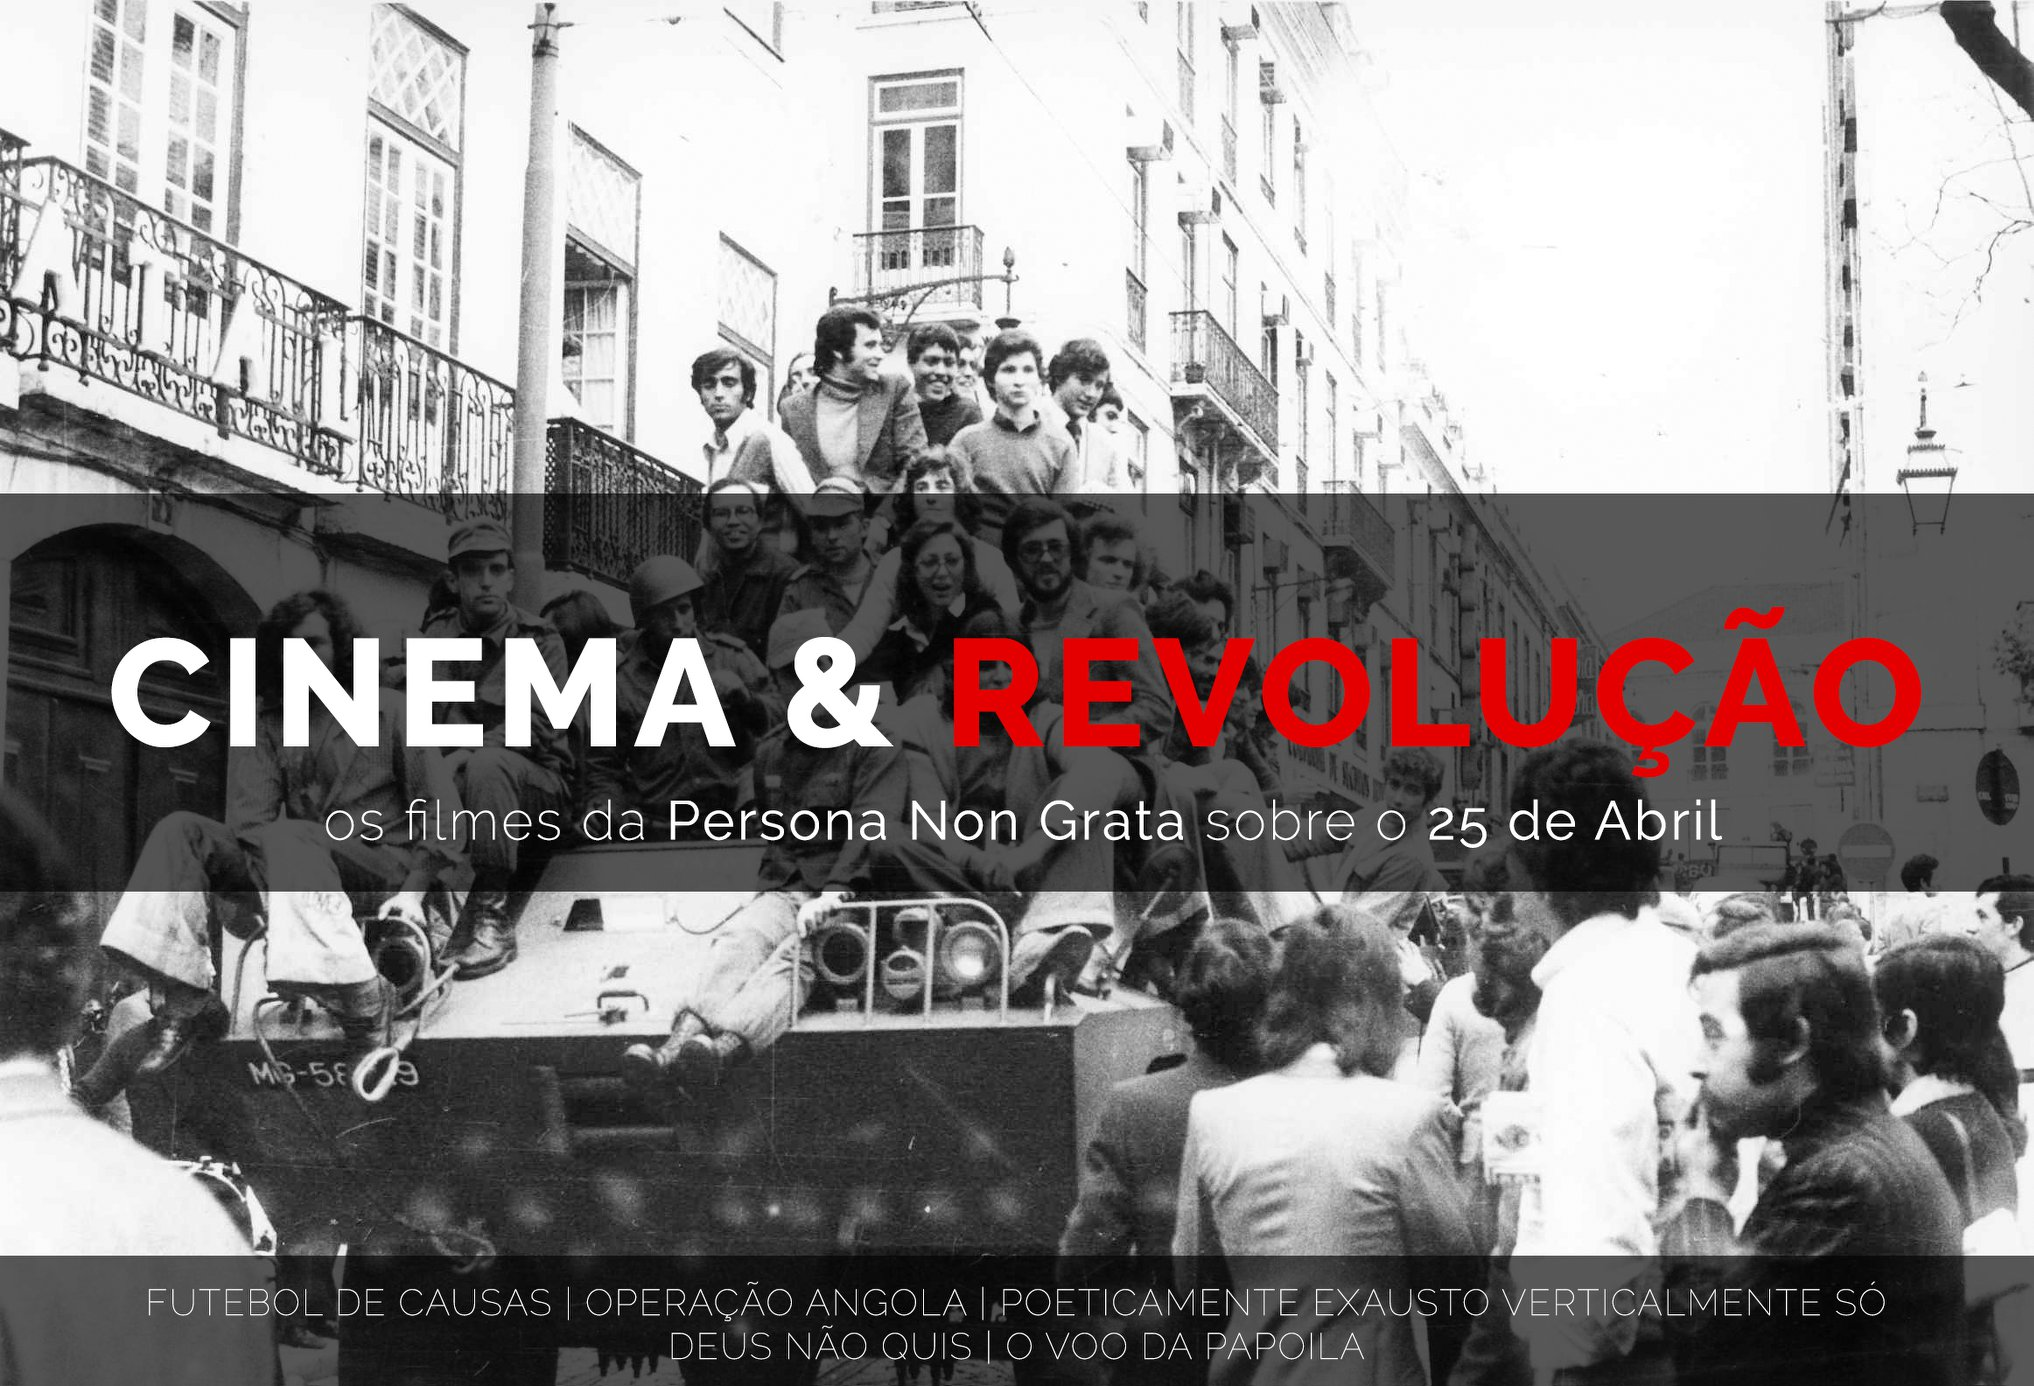 cinema revolucao